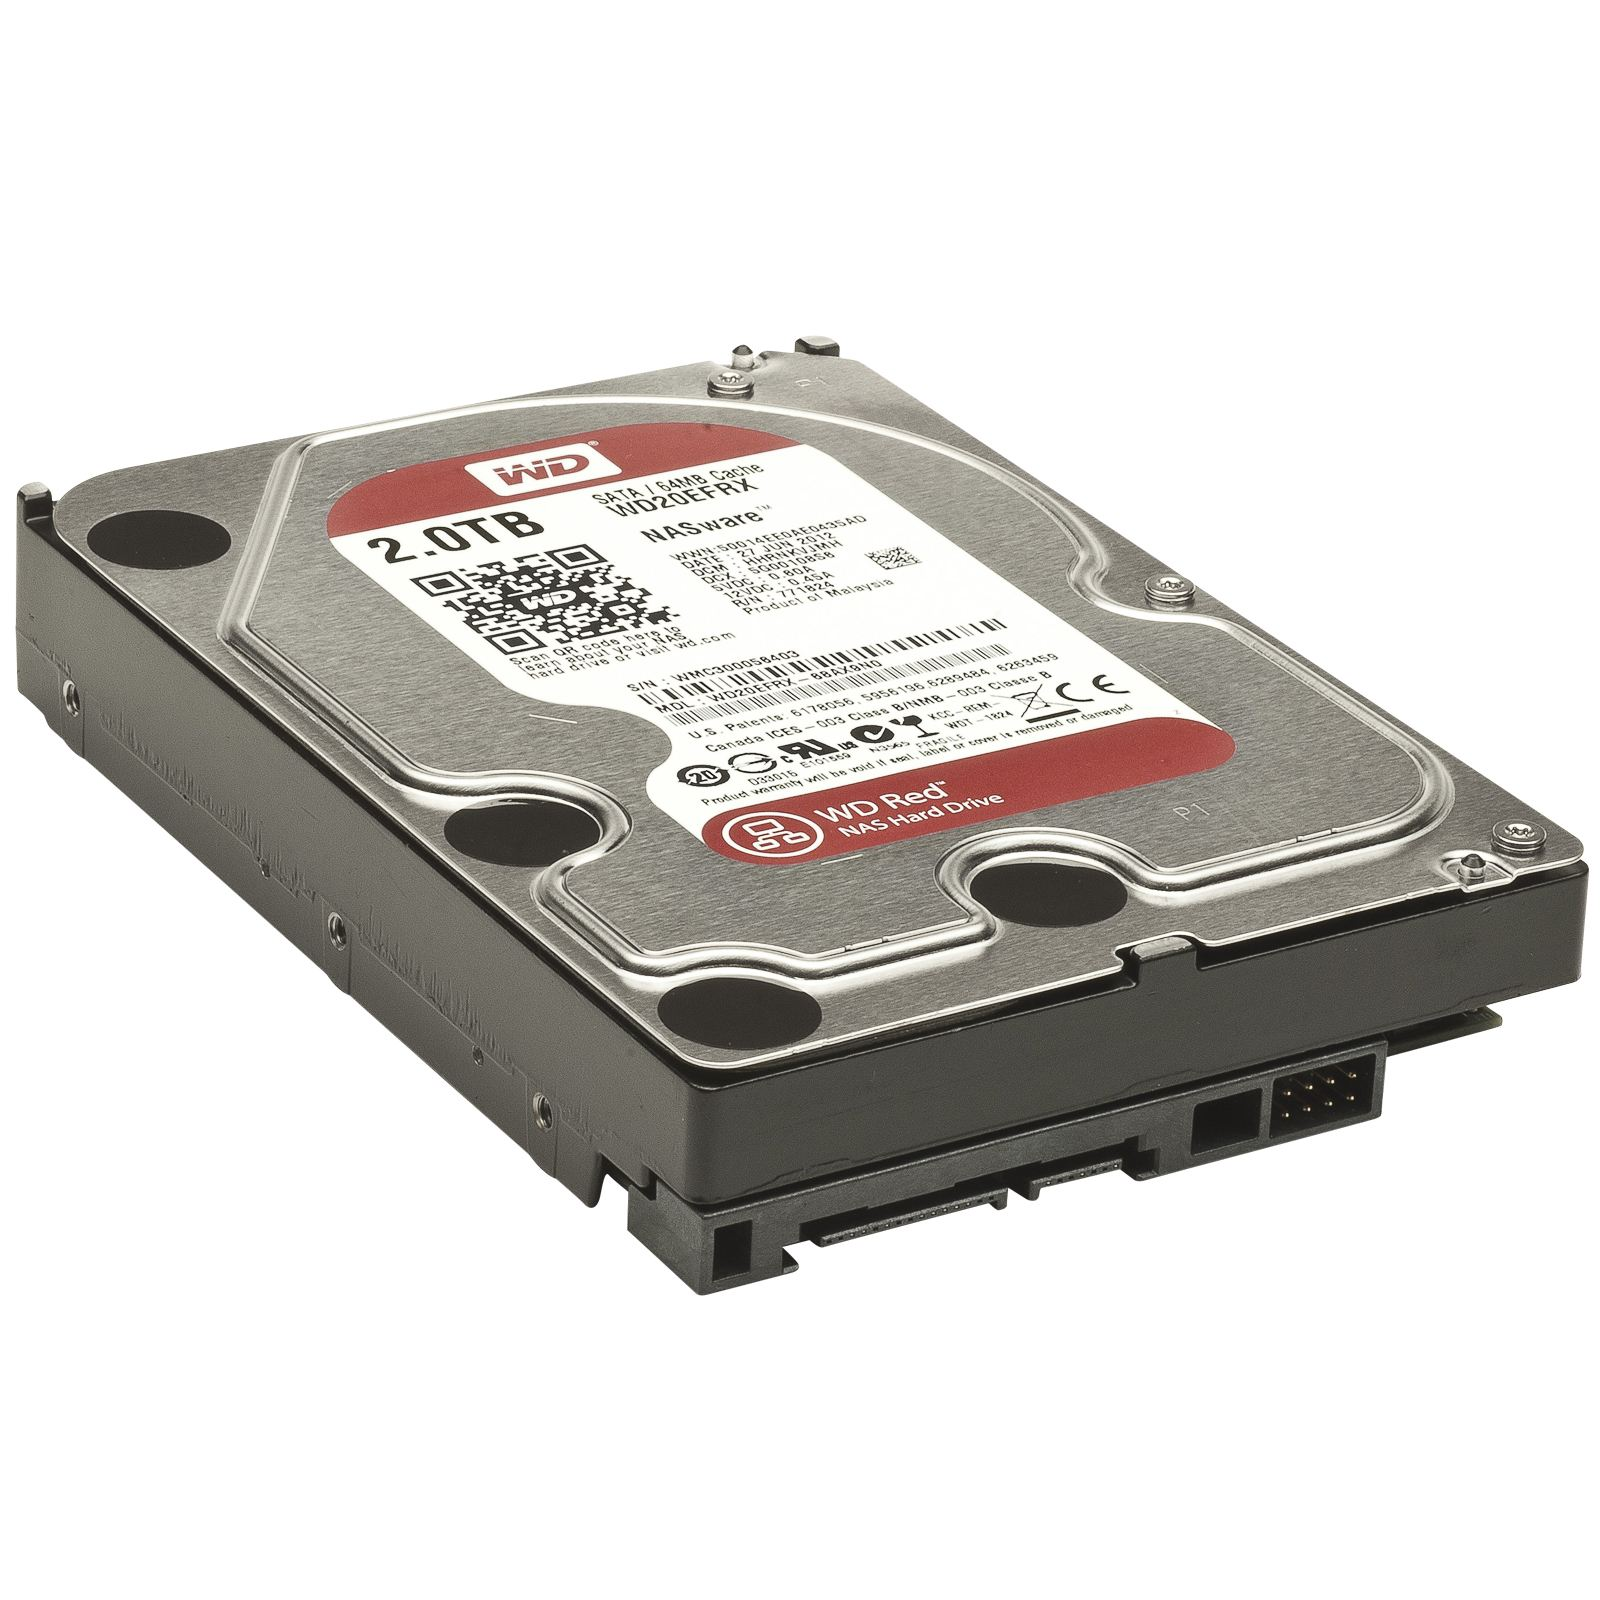 Hdd data rescue